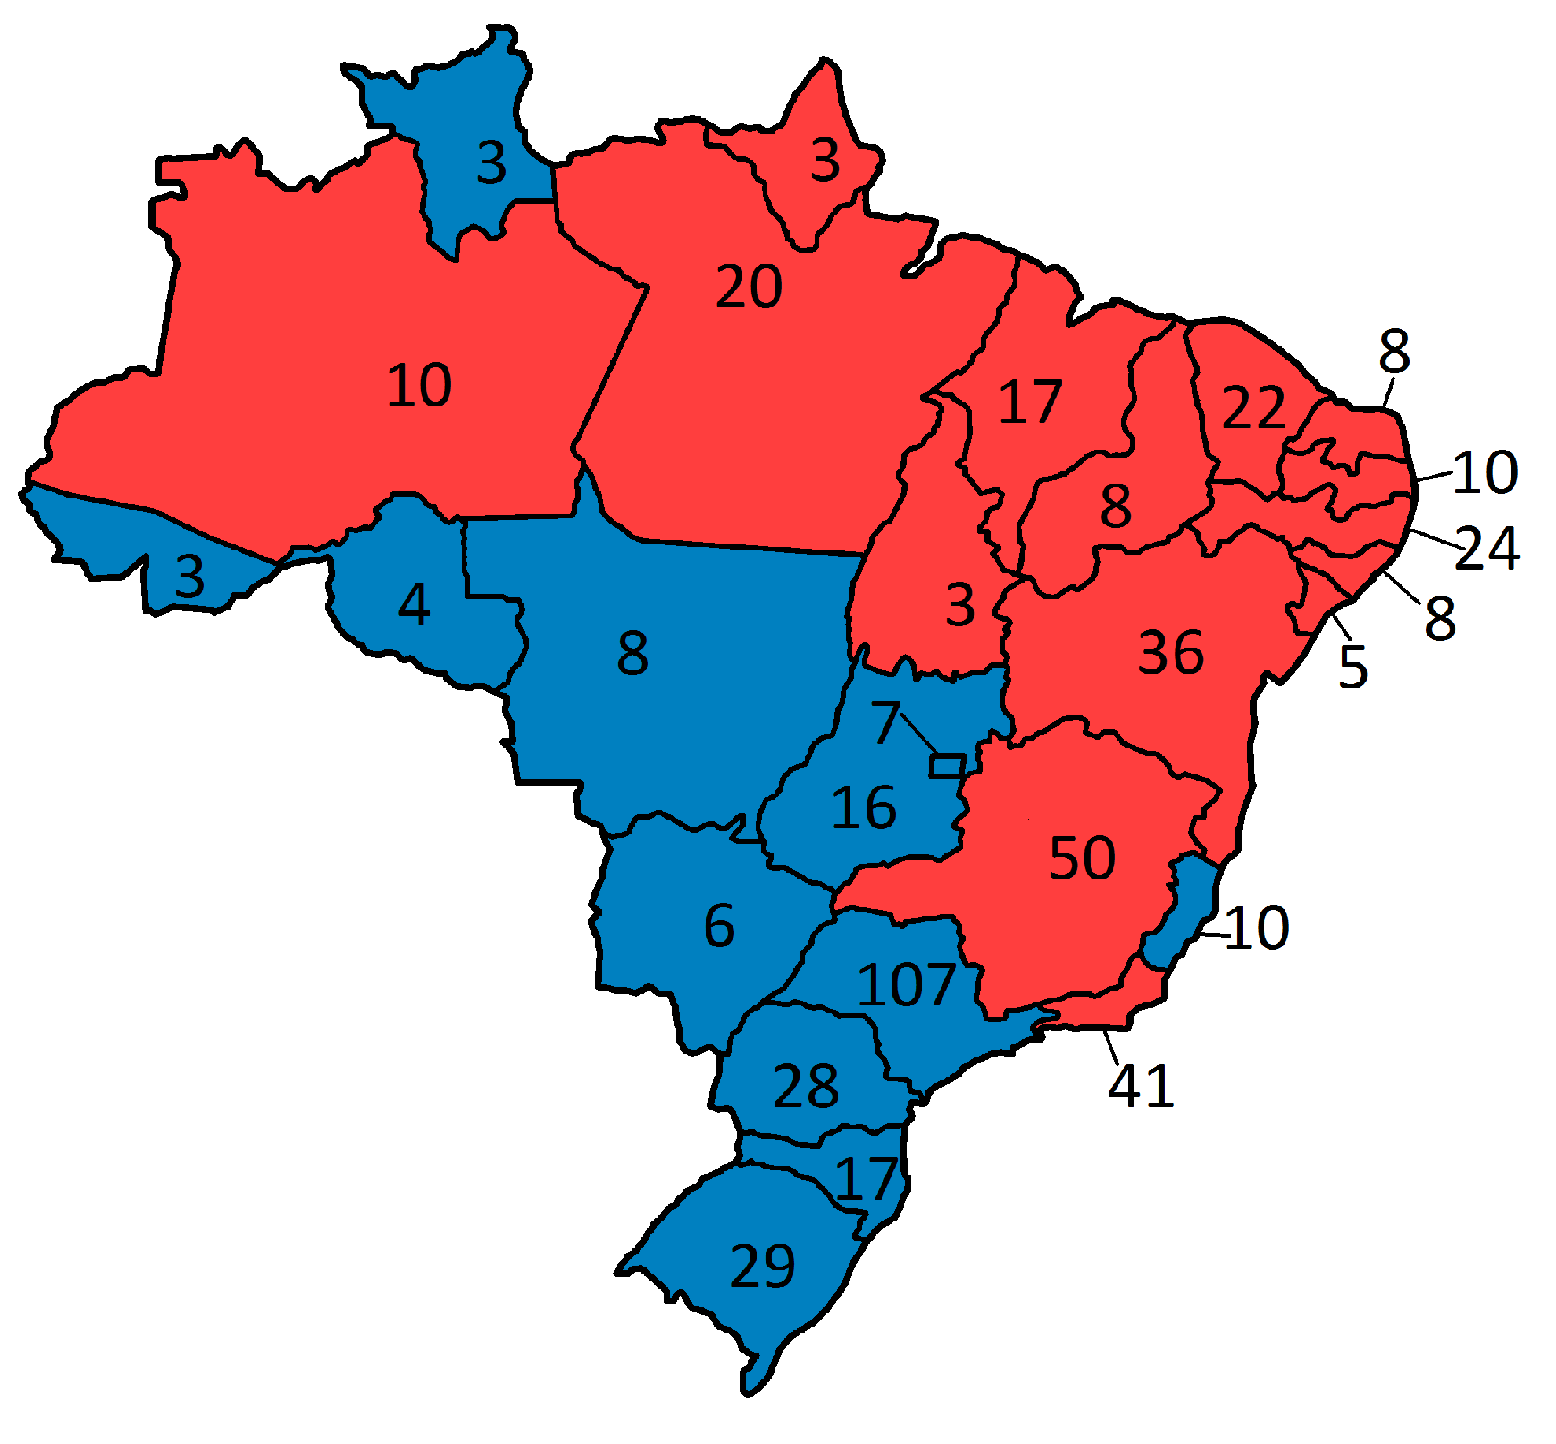 brazil_blank_map_state.png